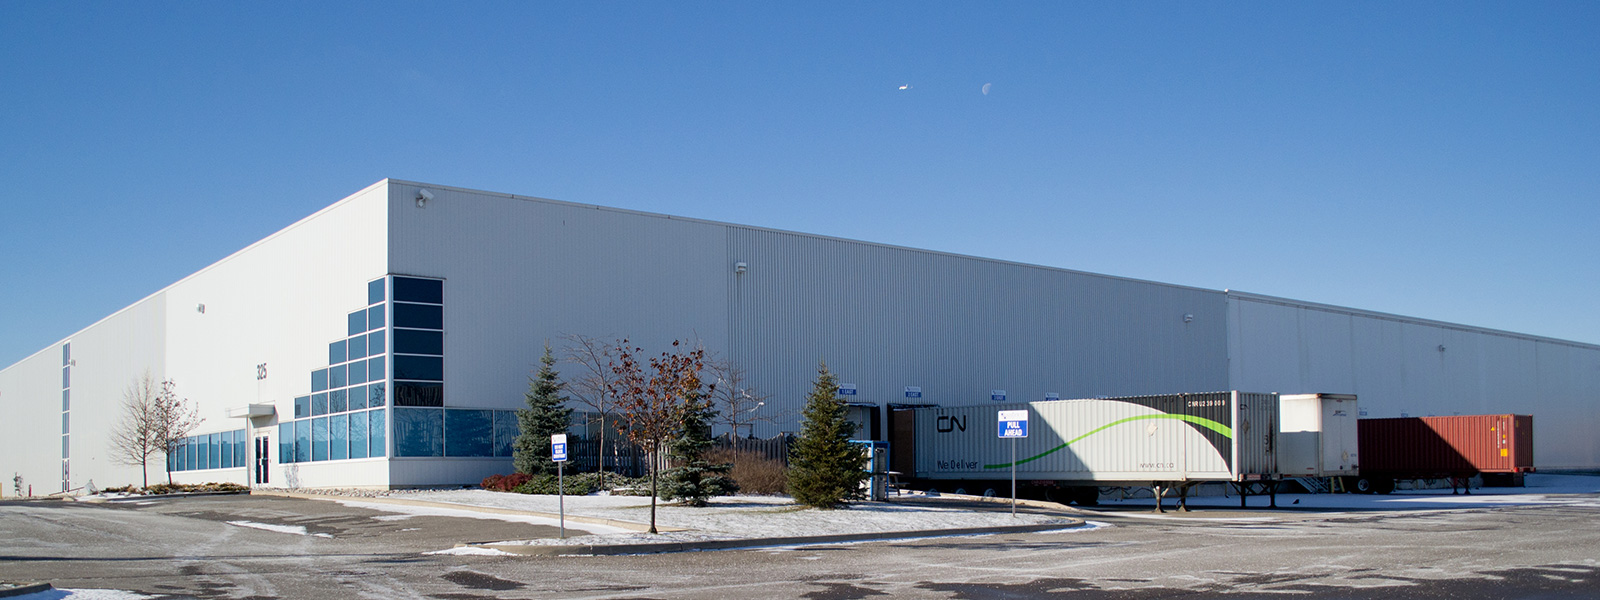 Sherway Logistics